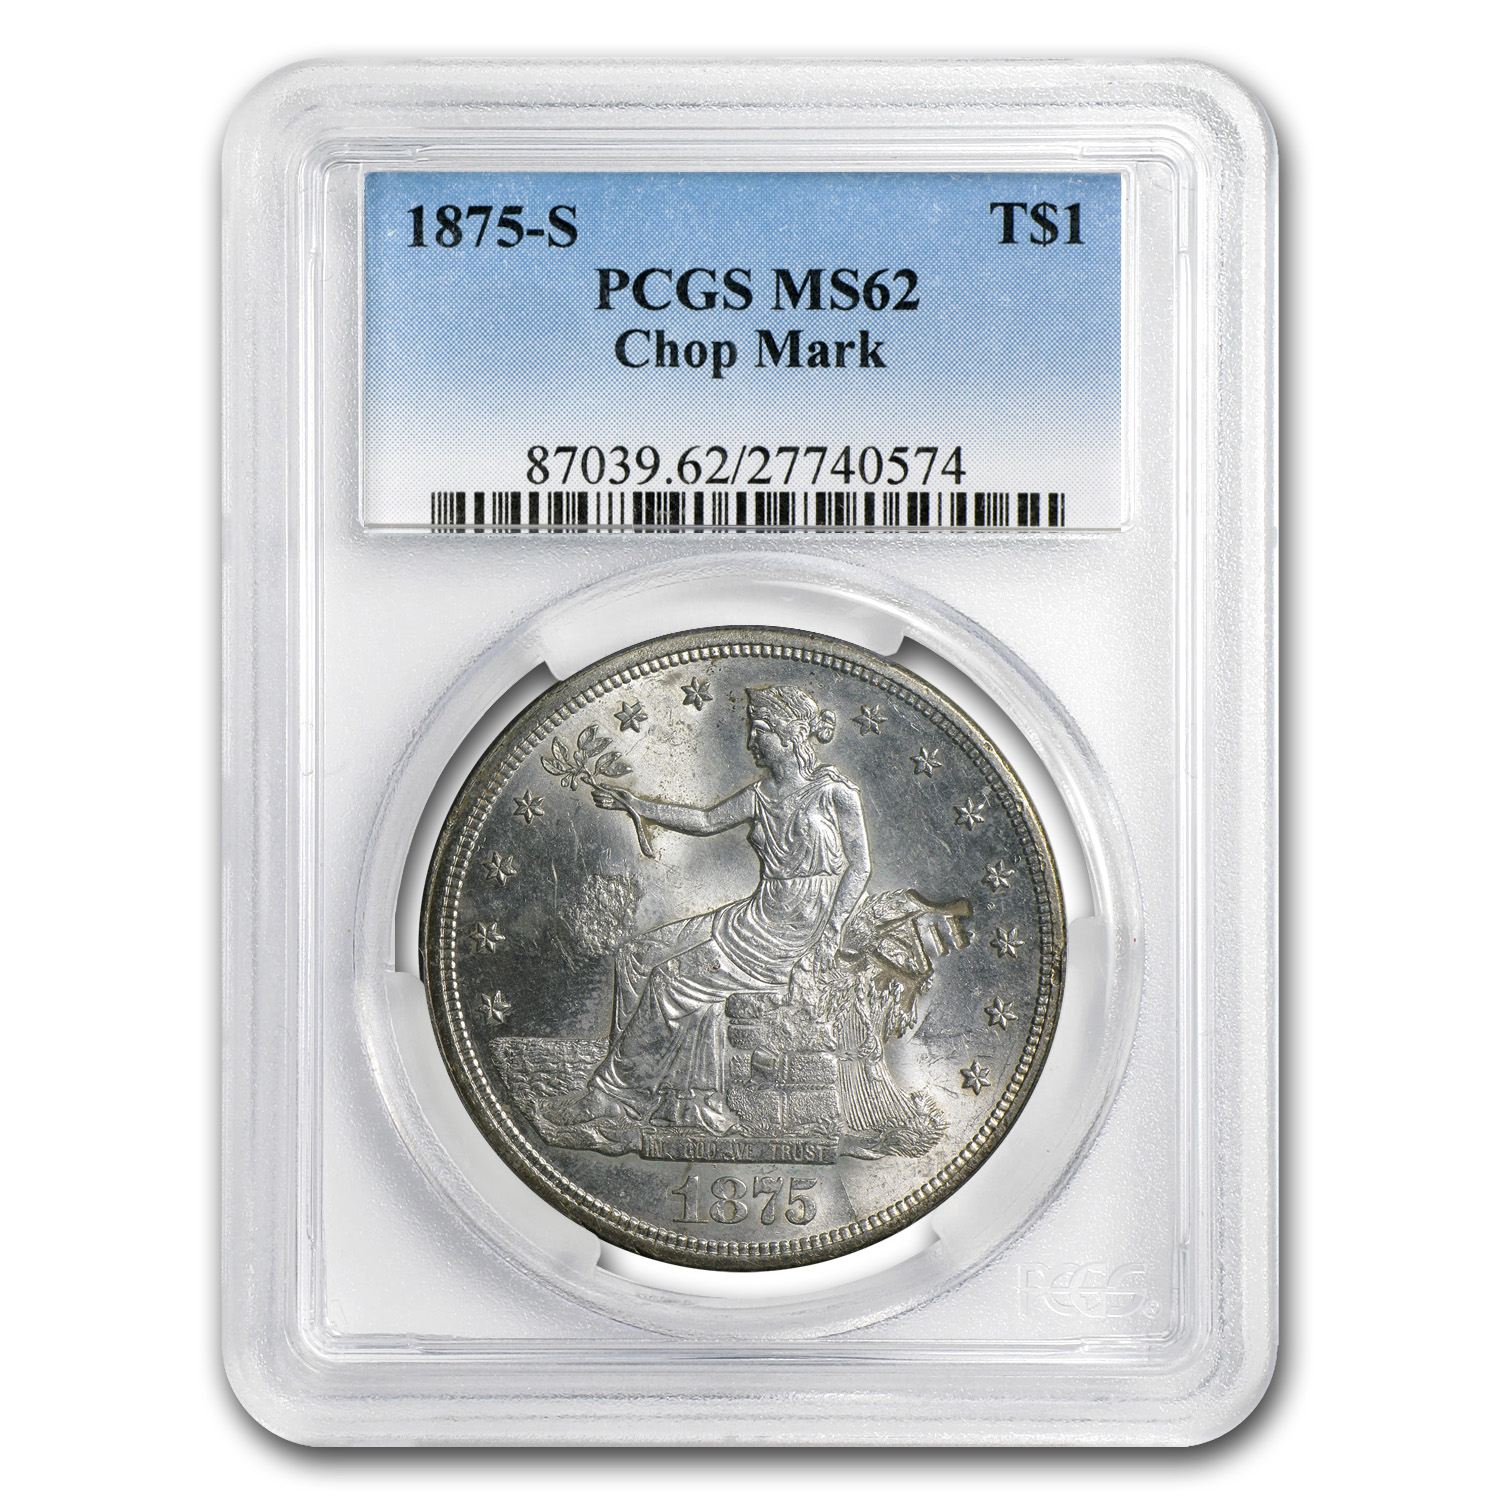 1875-S Trade Dollar MS-62 PCGS (Chopmark)